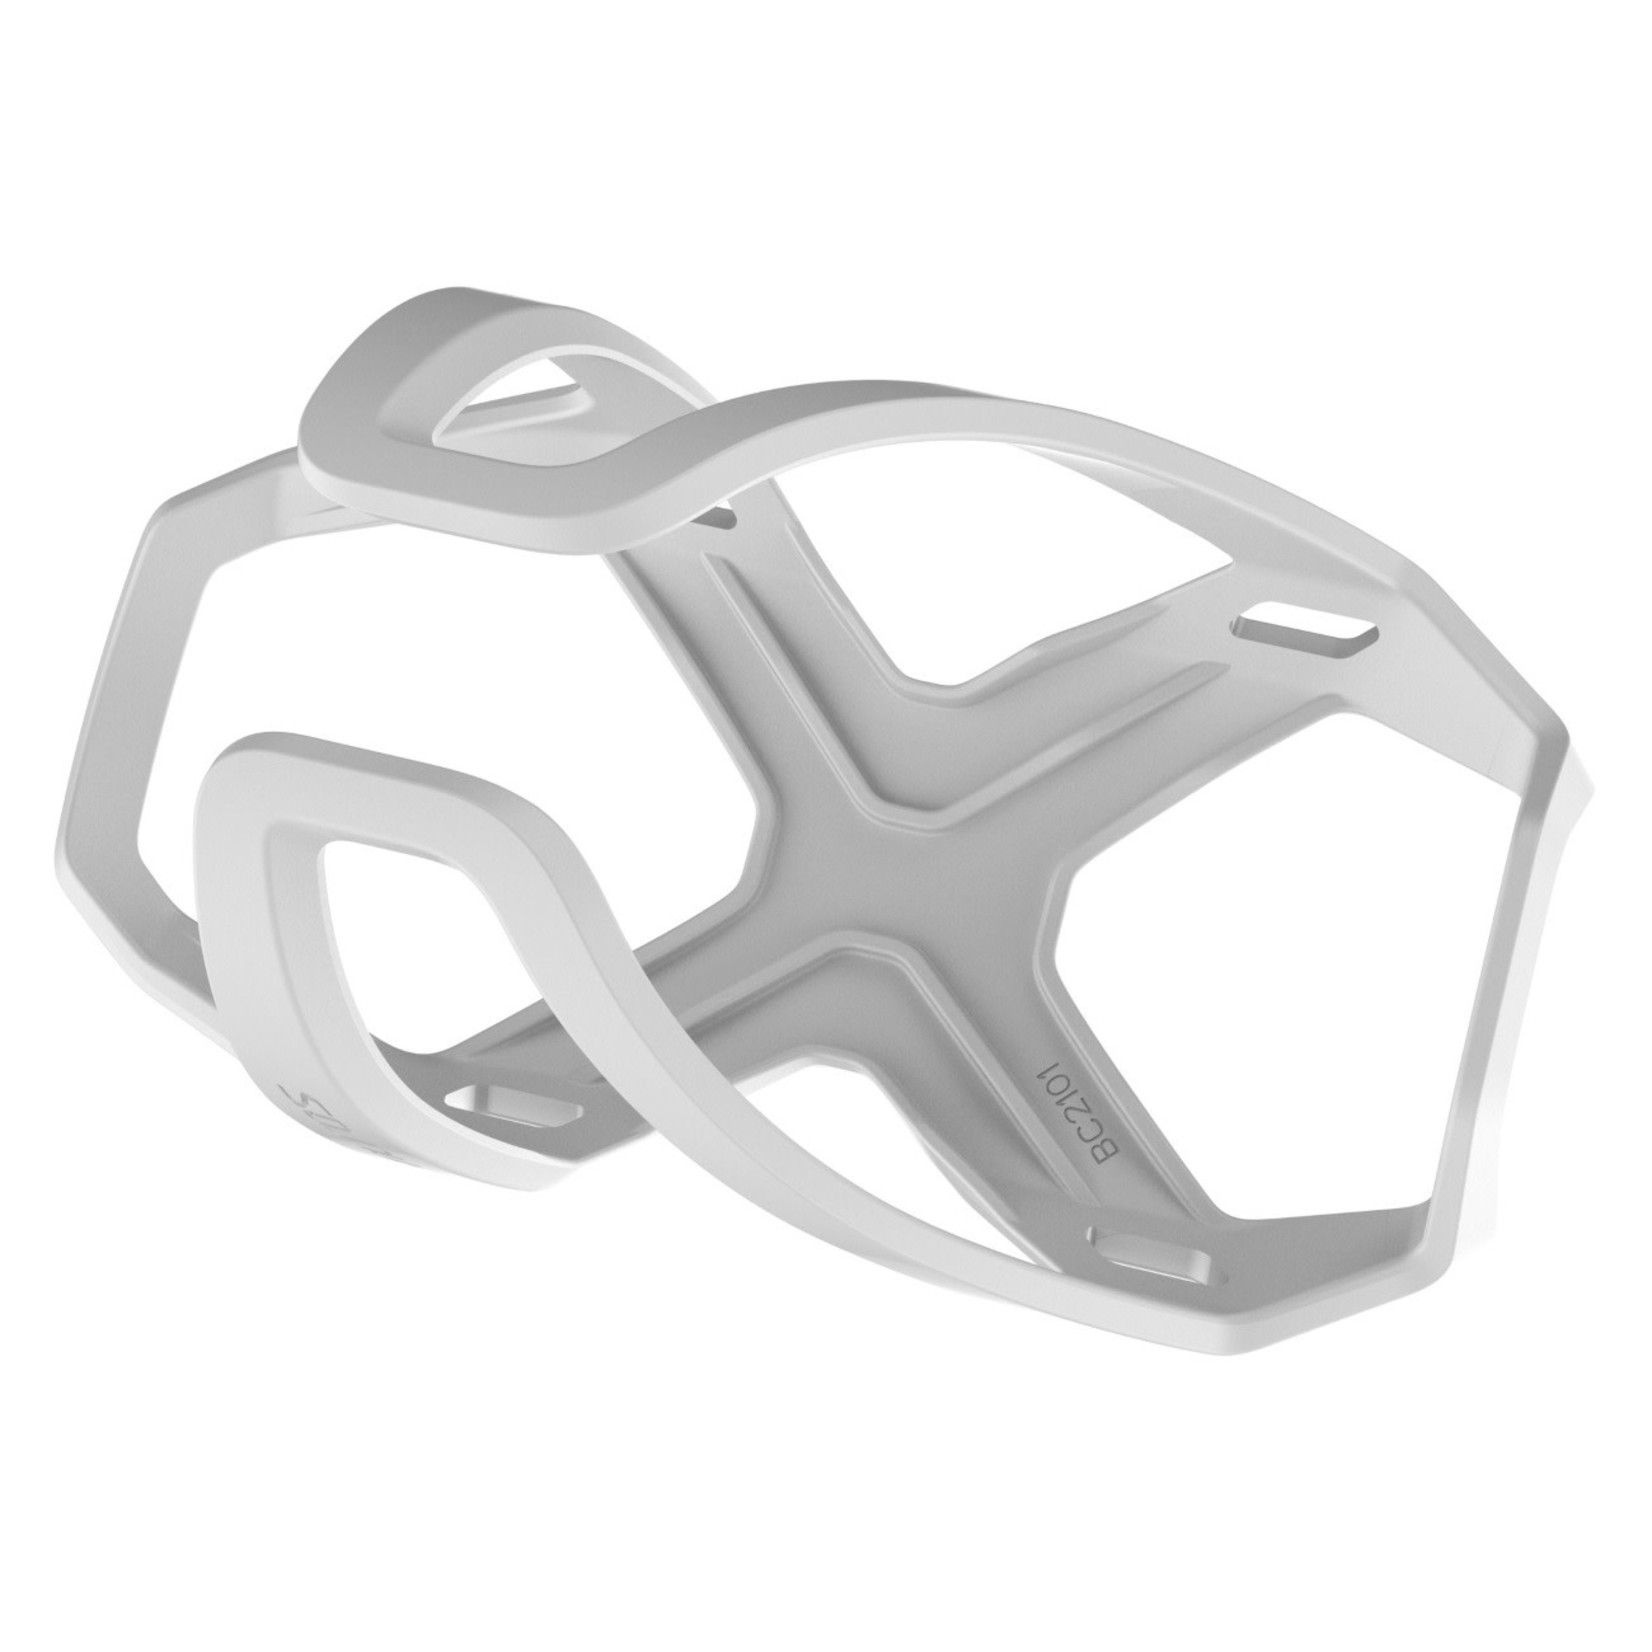 Syncros SYN Bottle Cage Tailor Cage 3.0 white 1size